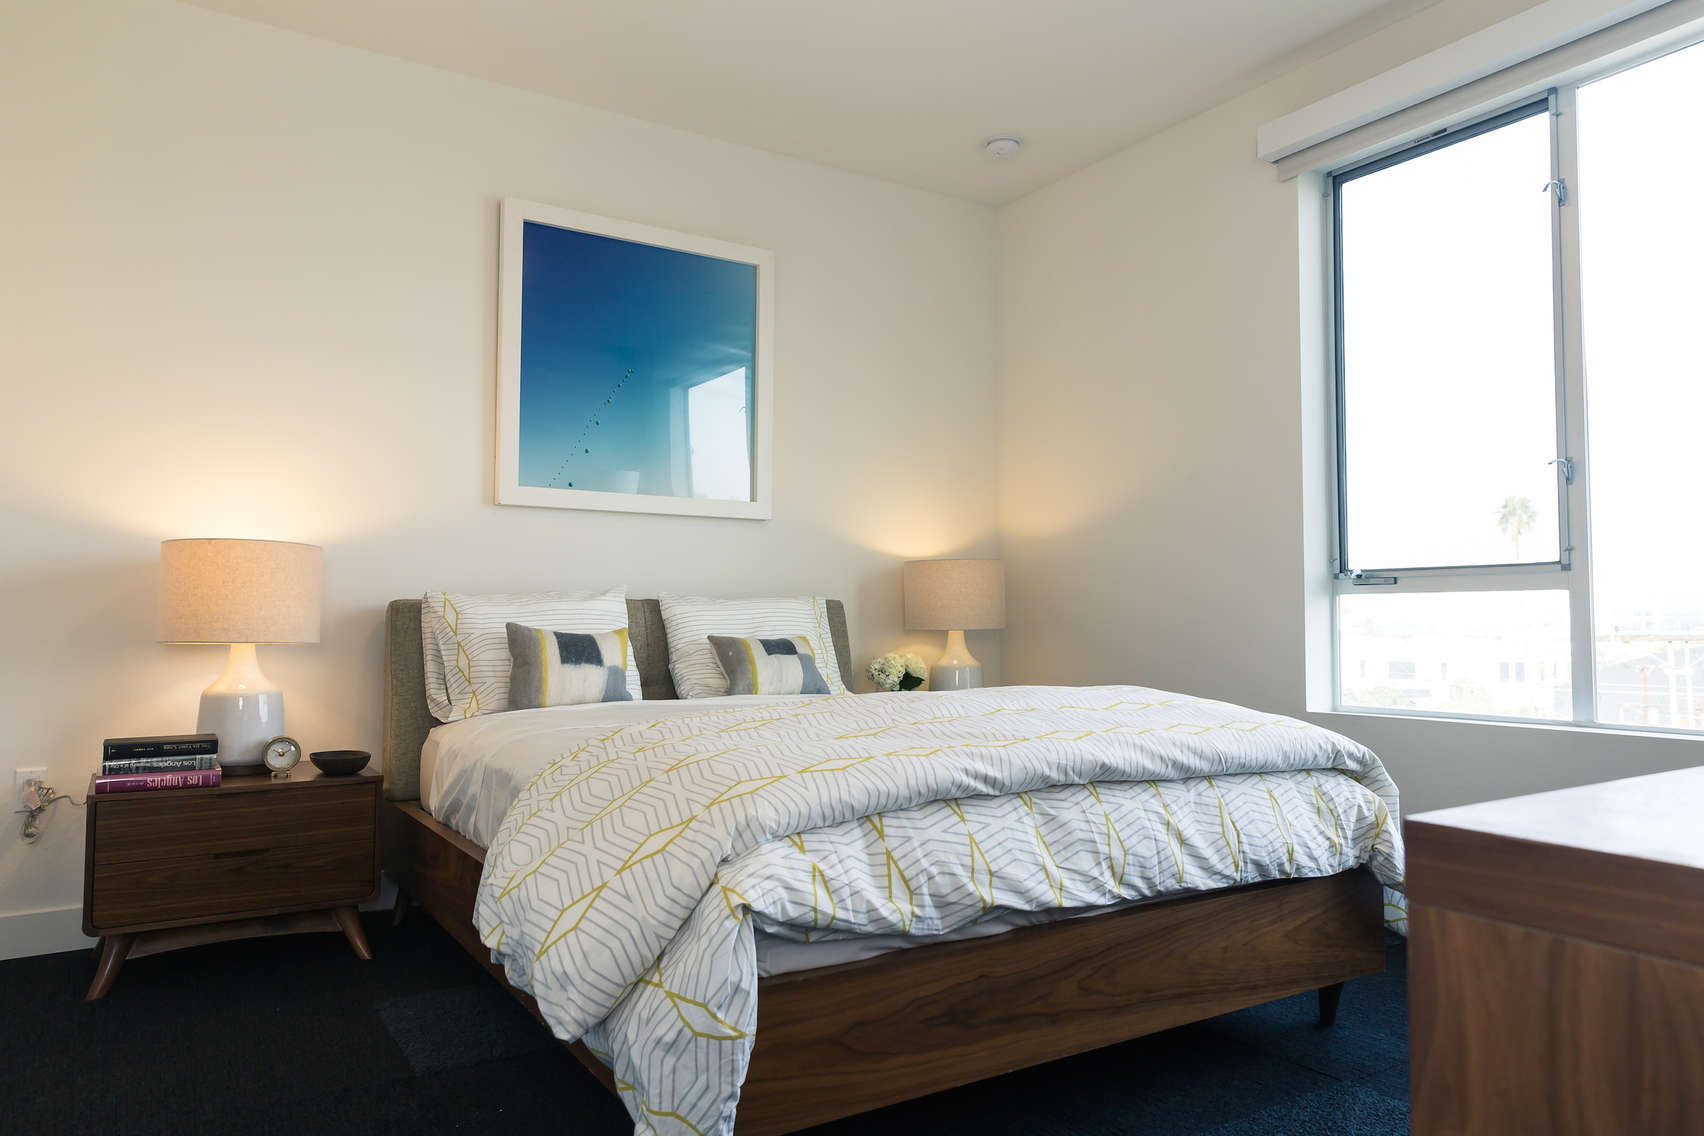 Studio Apartment Hollywood 46 apartments in eye-catching frame hollywood will rent from